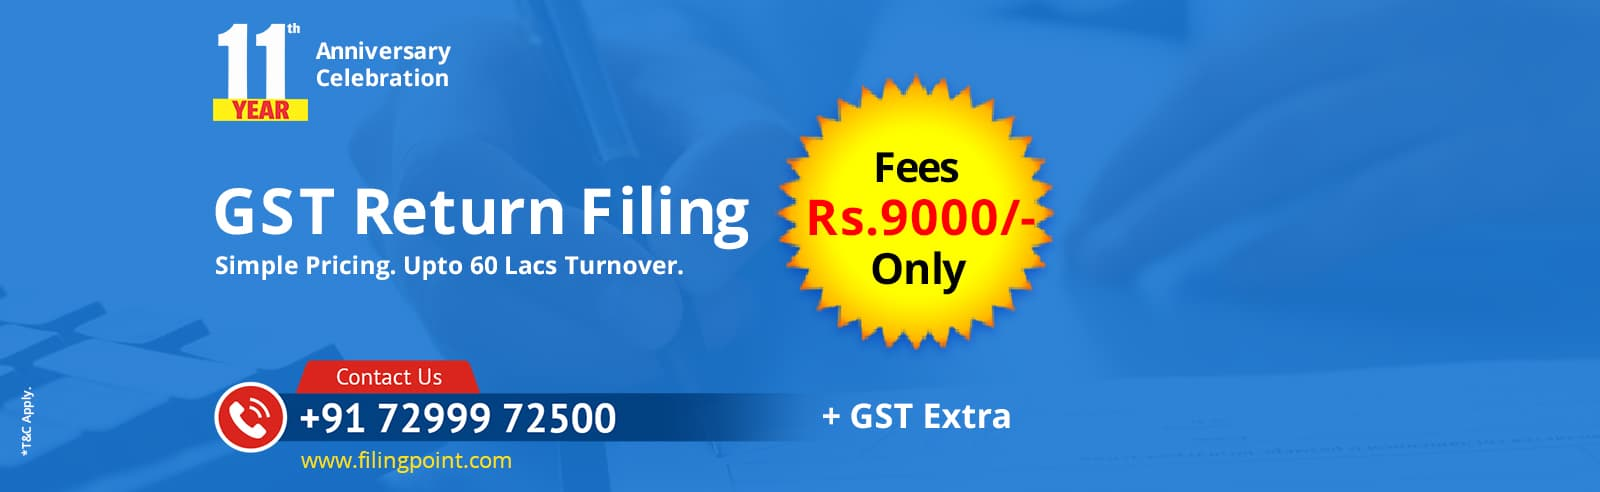 GST Filing Services Near Me Chennai 6TH STREET ATHIPATTU AMBATTUR LAKE